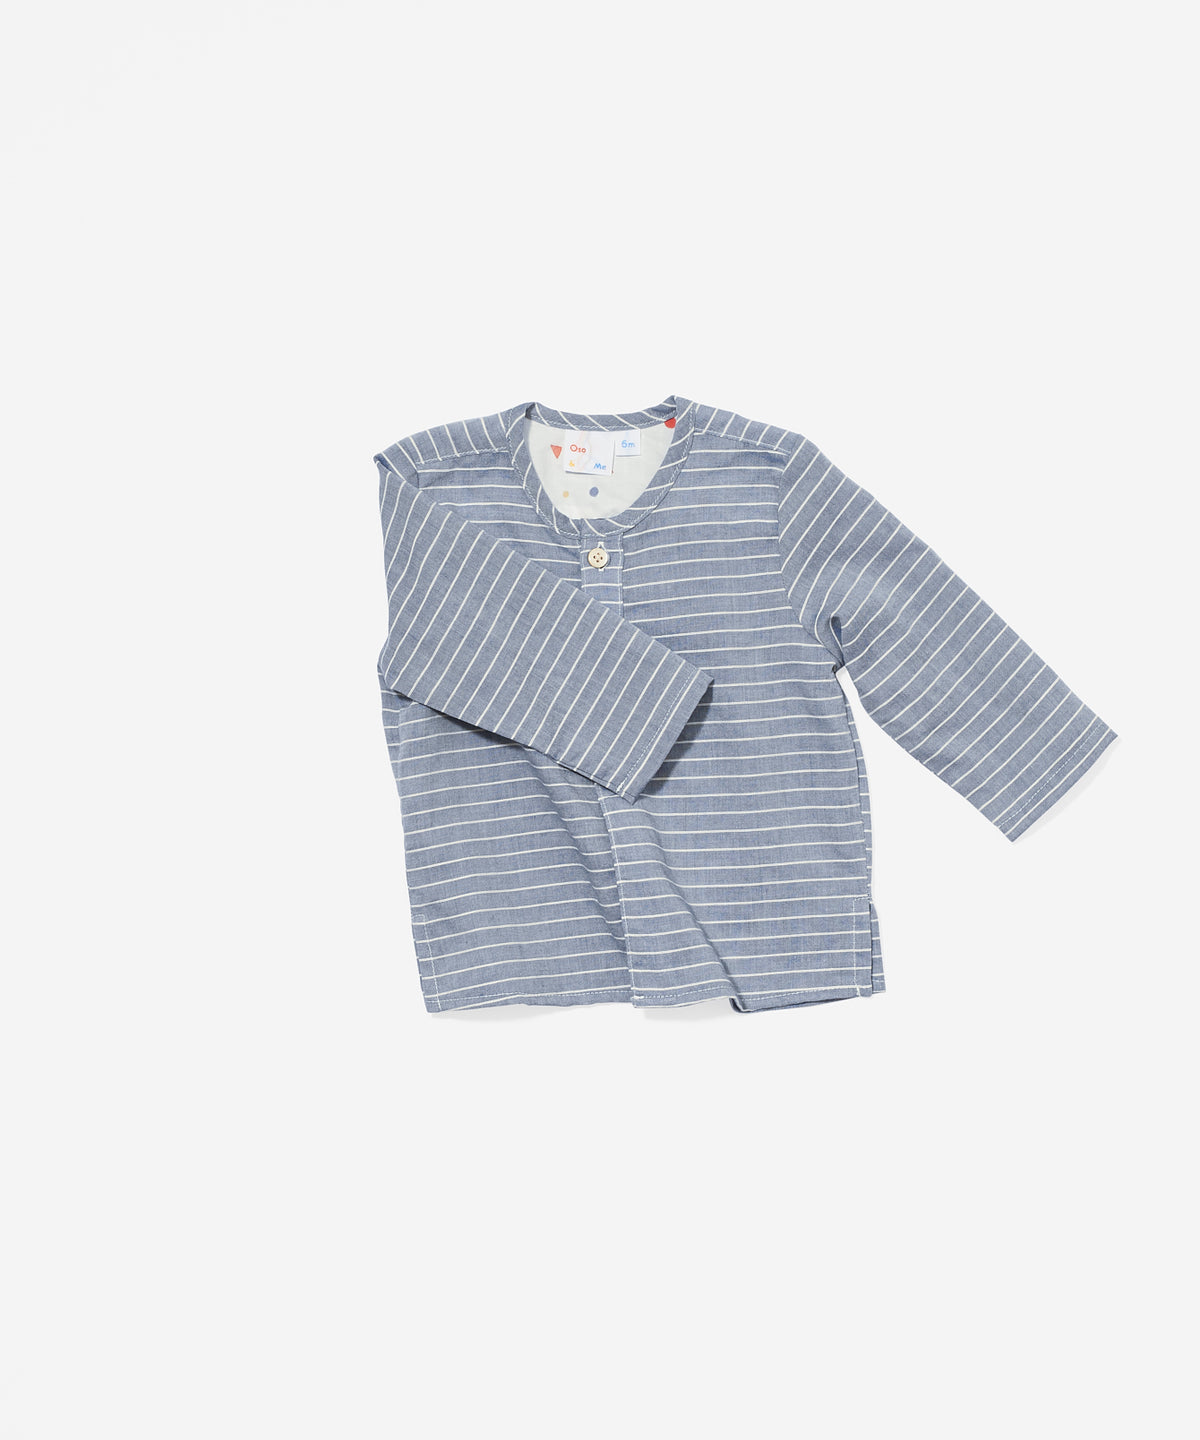 Quinn Shirt, Chambray Stripe